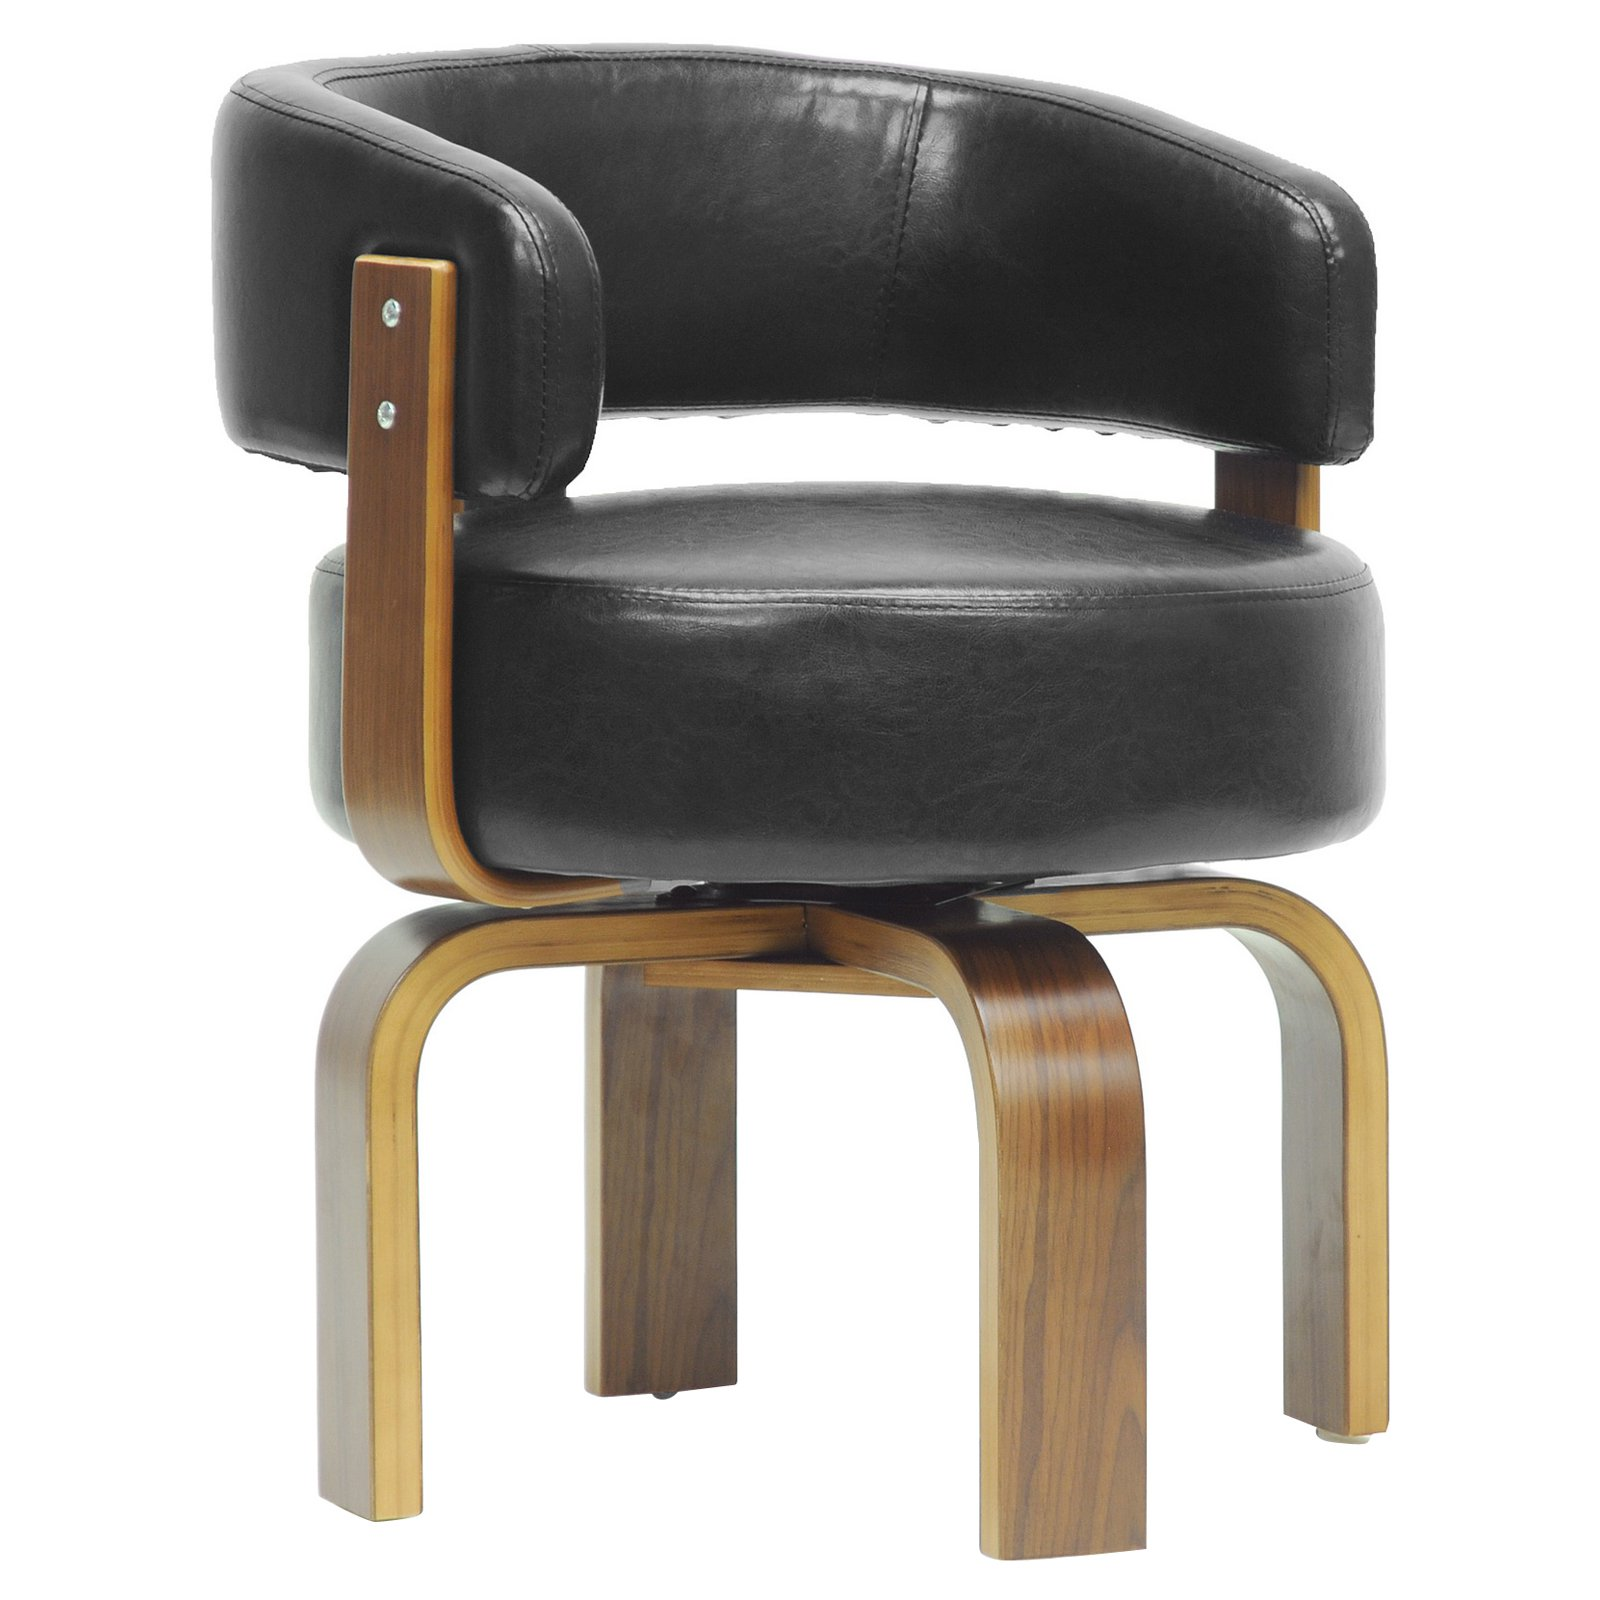 Baxton Studio Fortson Modern Accent Chair   Walnut / Black   Walmart.com